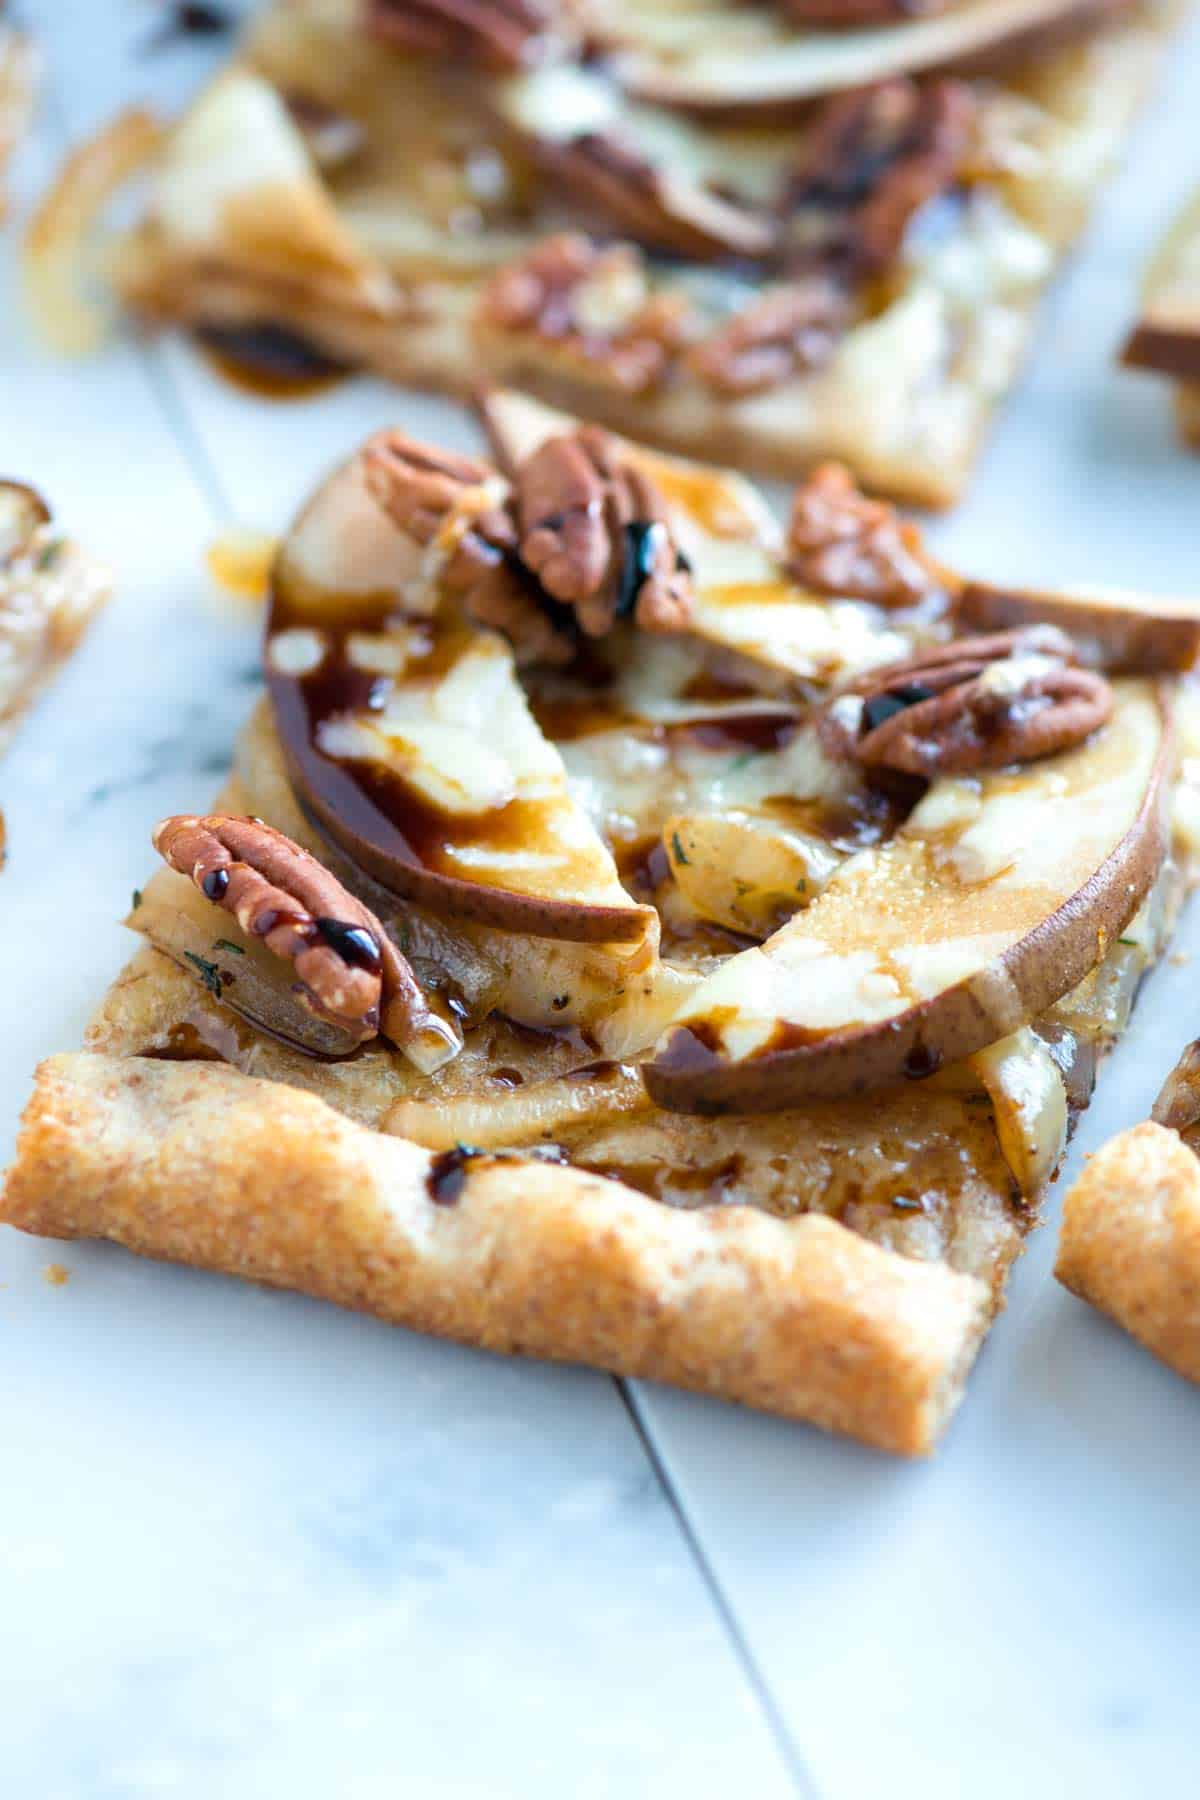 How to Make Pizza with Pears, Onions and a Balsamic Glaze